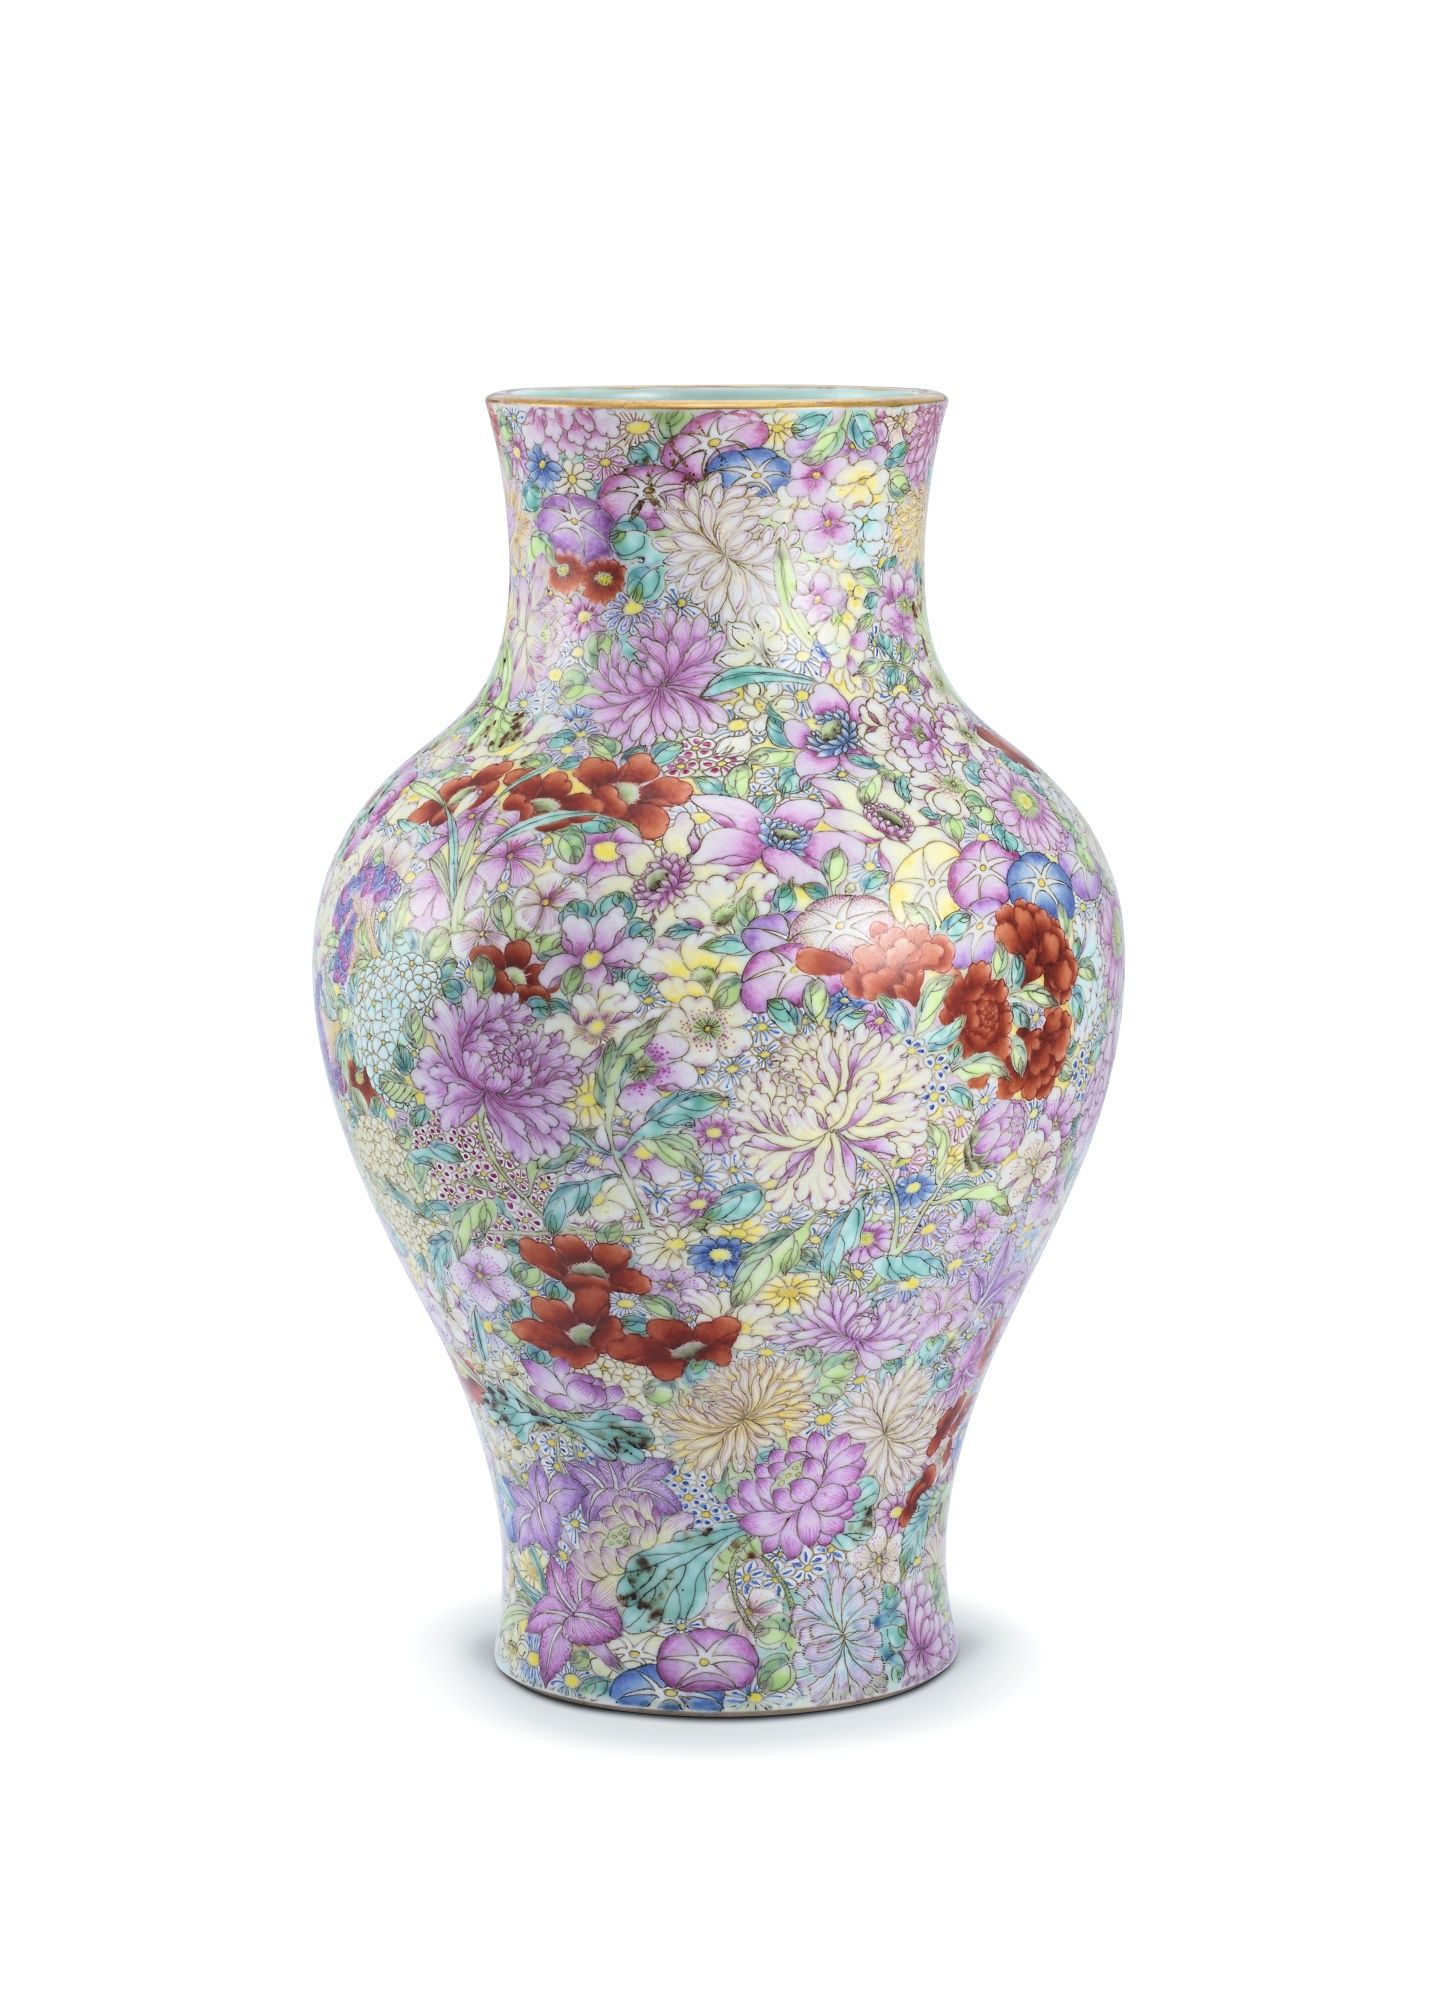 A famille rose mille fleurs vase qing dynasty 19th century with a famille rose mille fleurs vase qing dynasty 19th century with a baluster body rising to a rounded shoulder and waisted neck the exterior delicately reviewsmspy